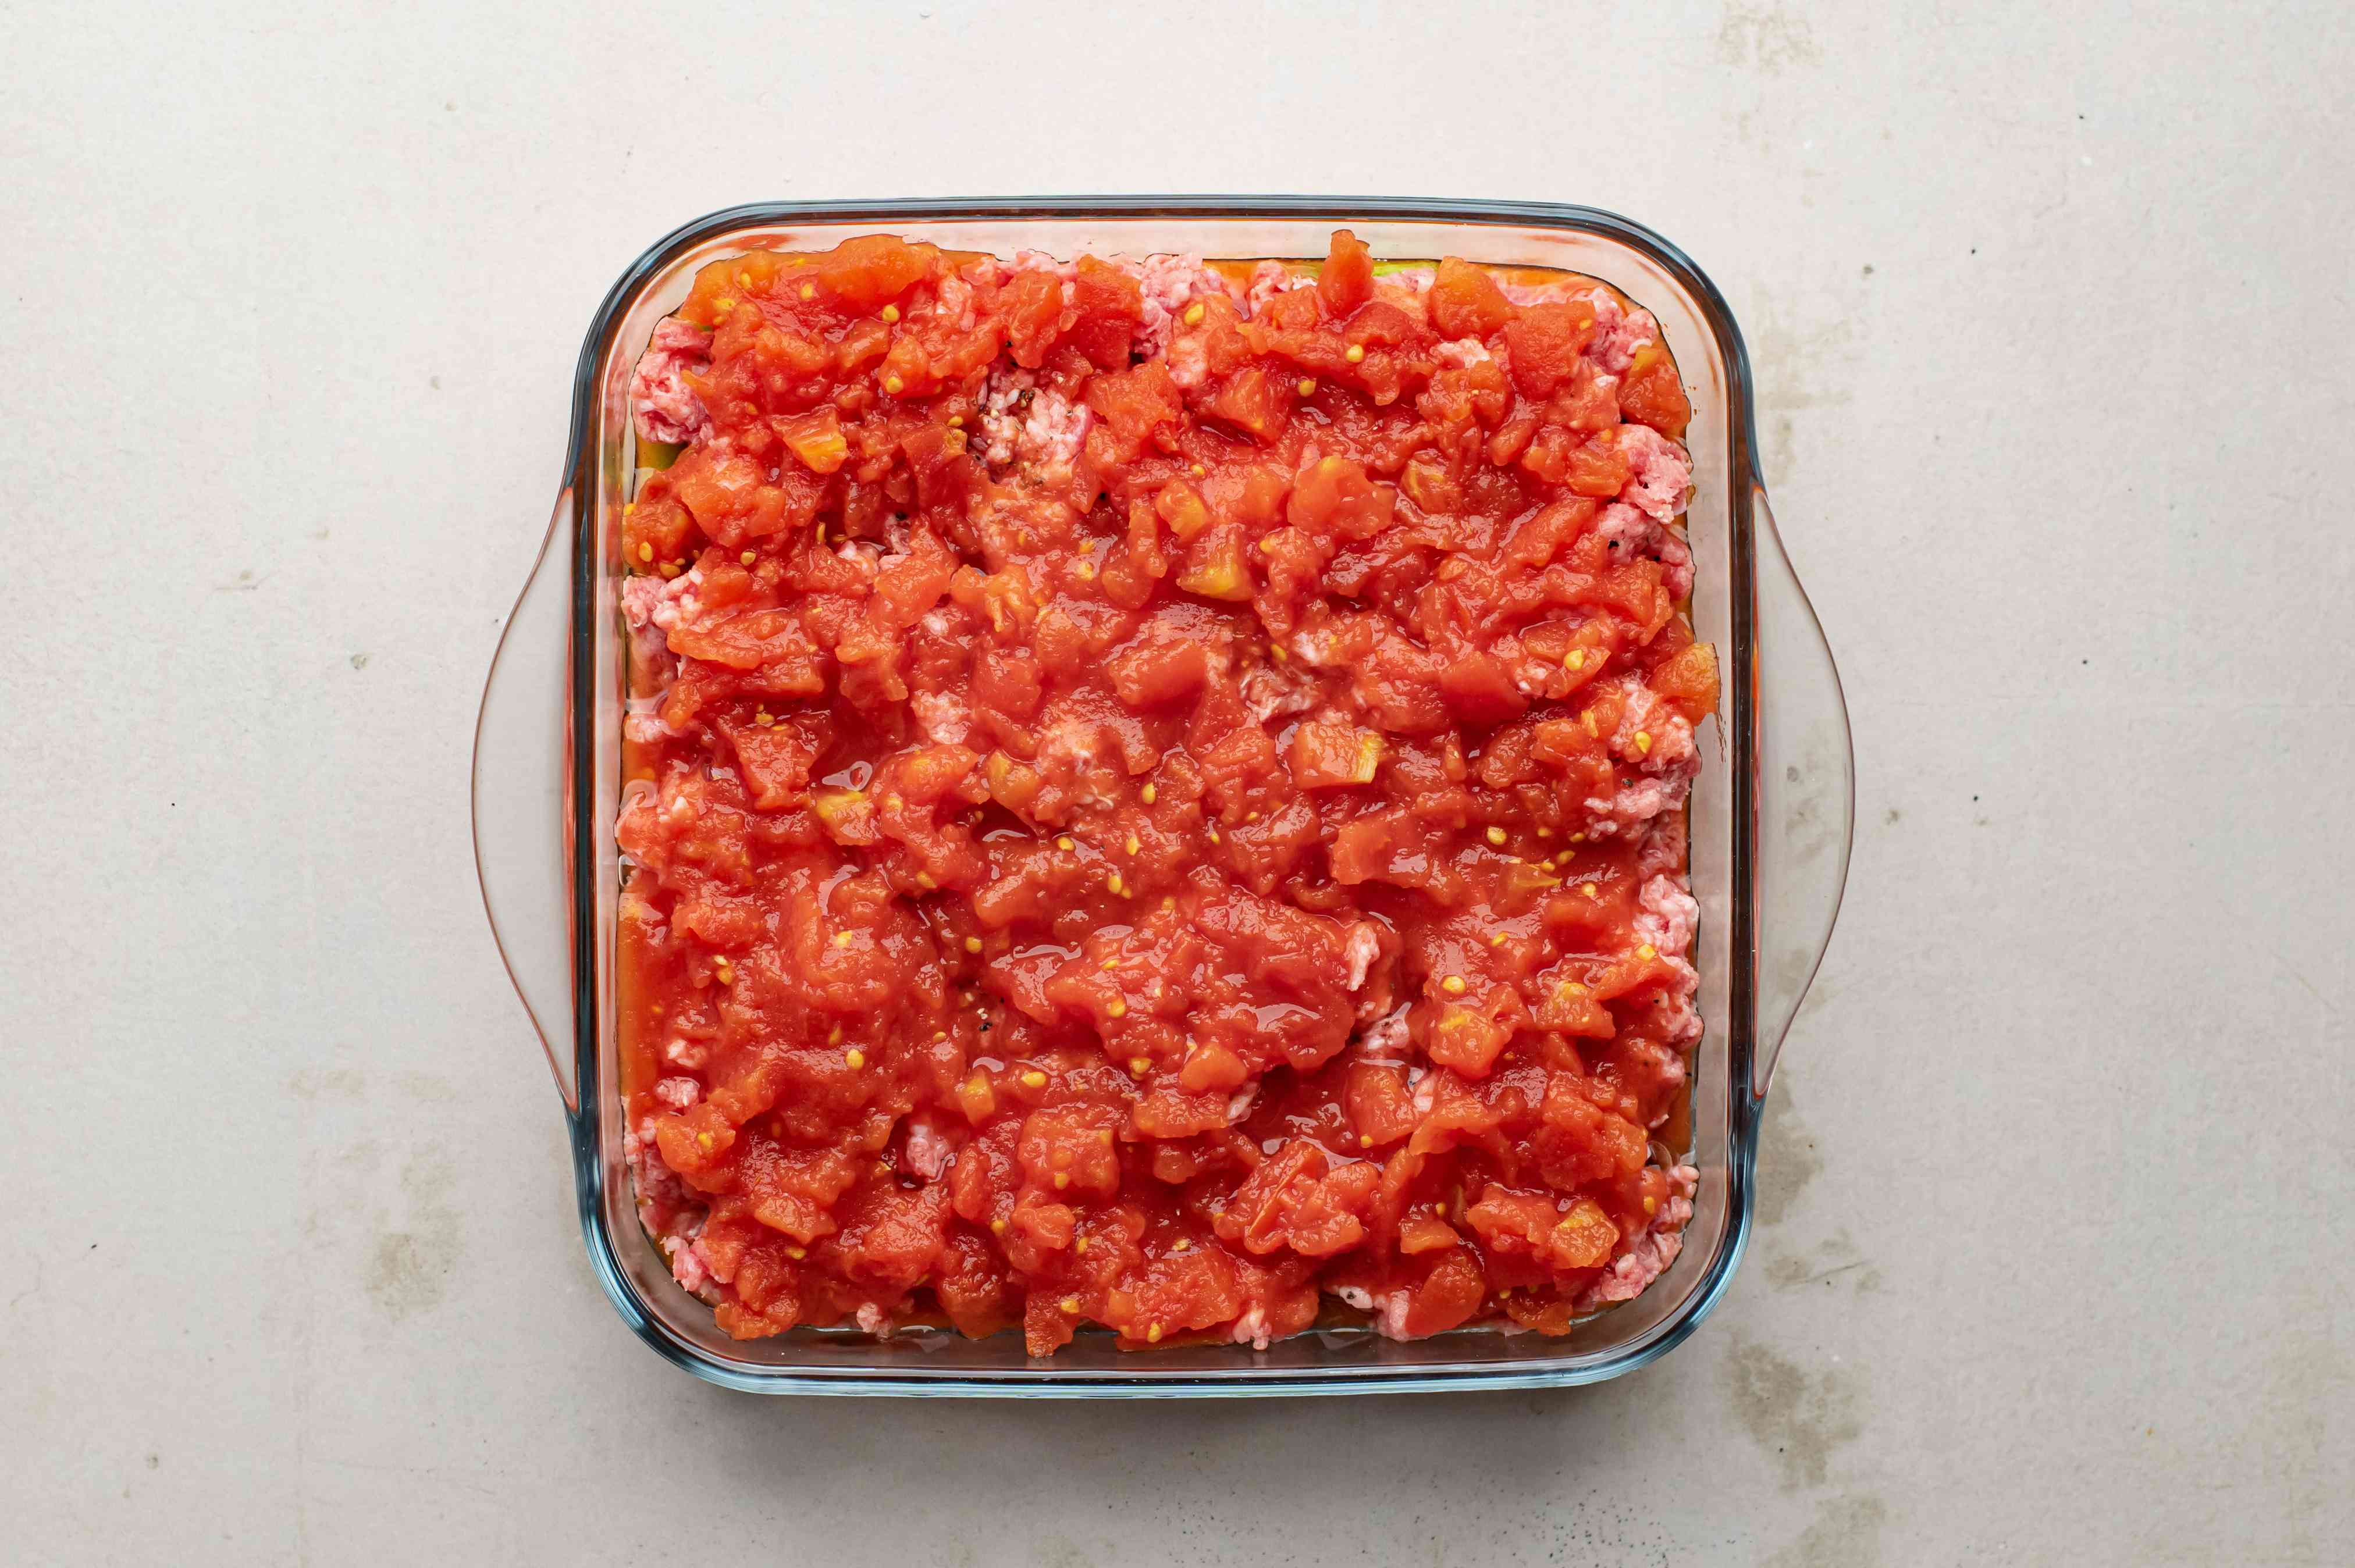 Add can of diced tomatoes to baking dish